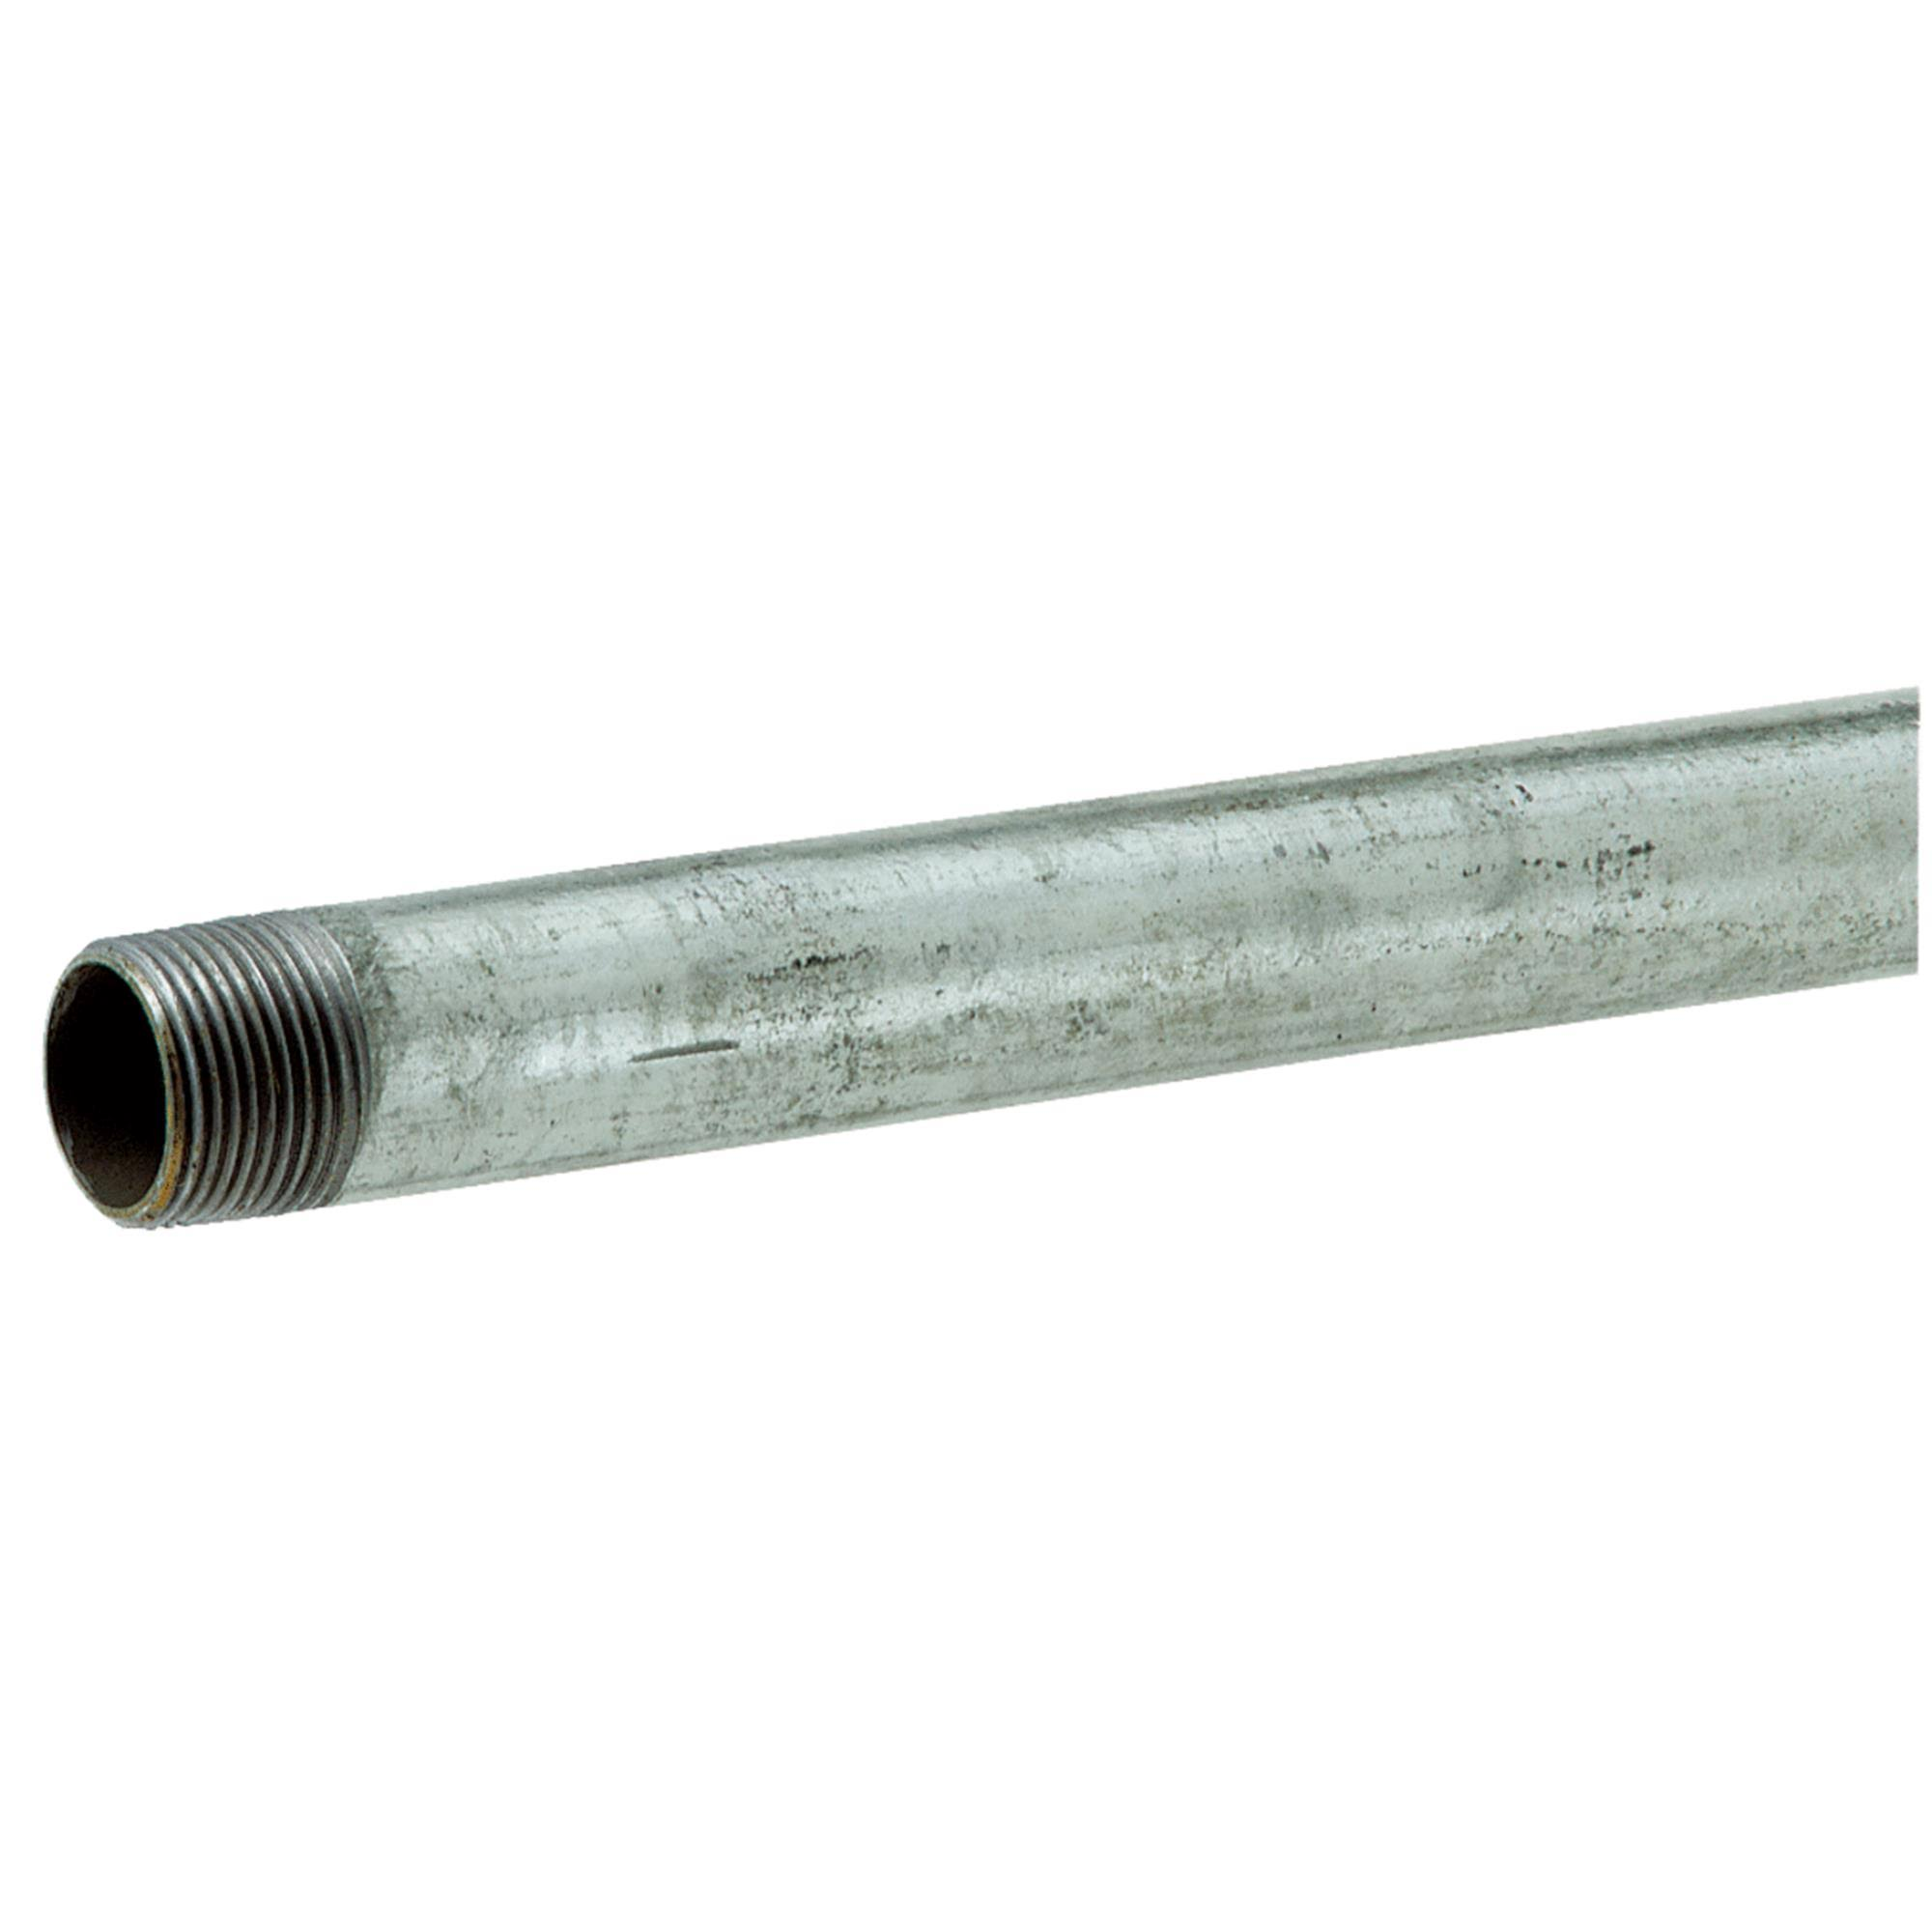 "Southland Galvanized Pipe - 3/4"" x 18"", Threaded"